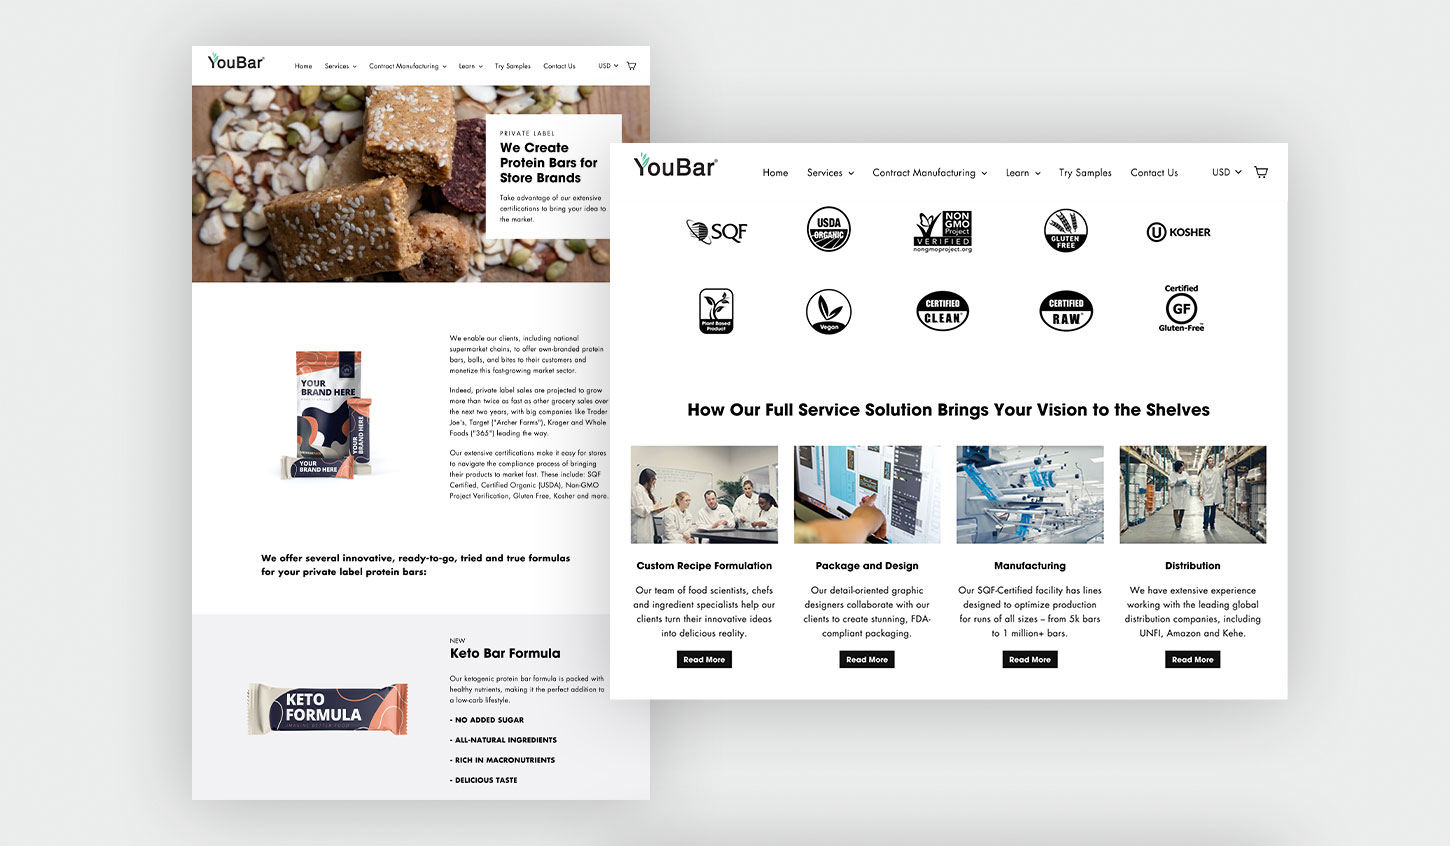 YouBar Inner Pages and Custom Section